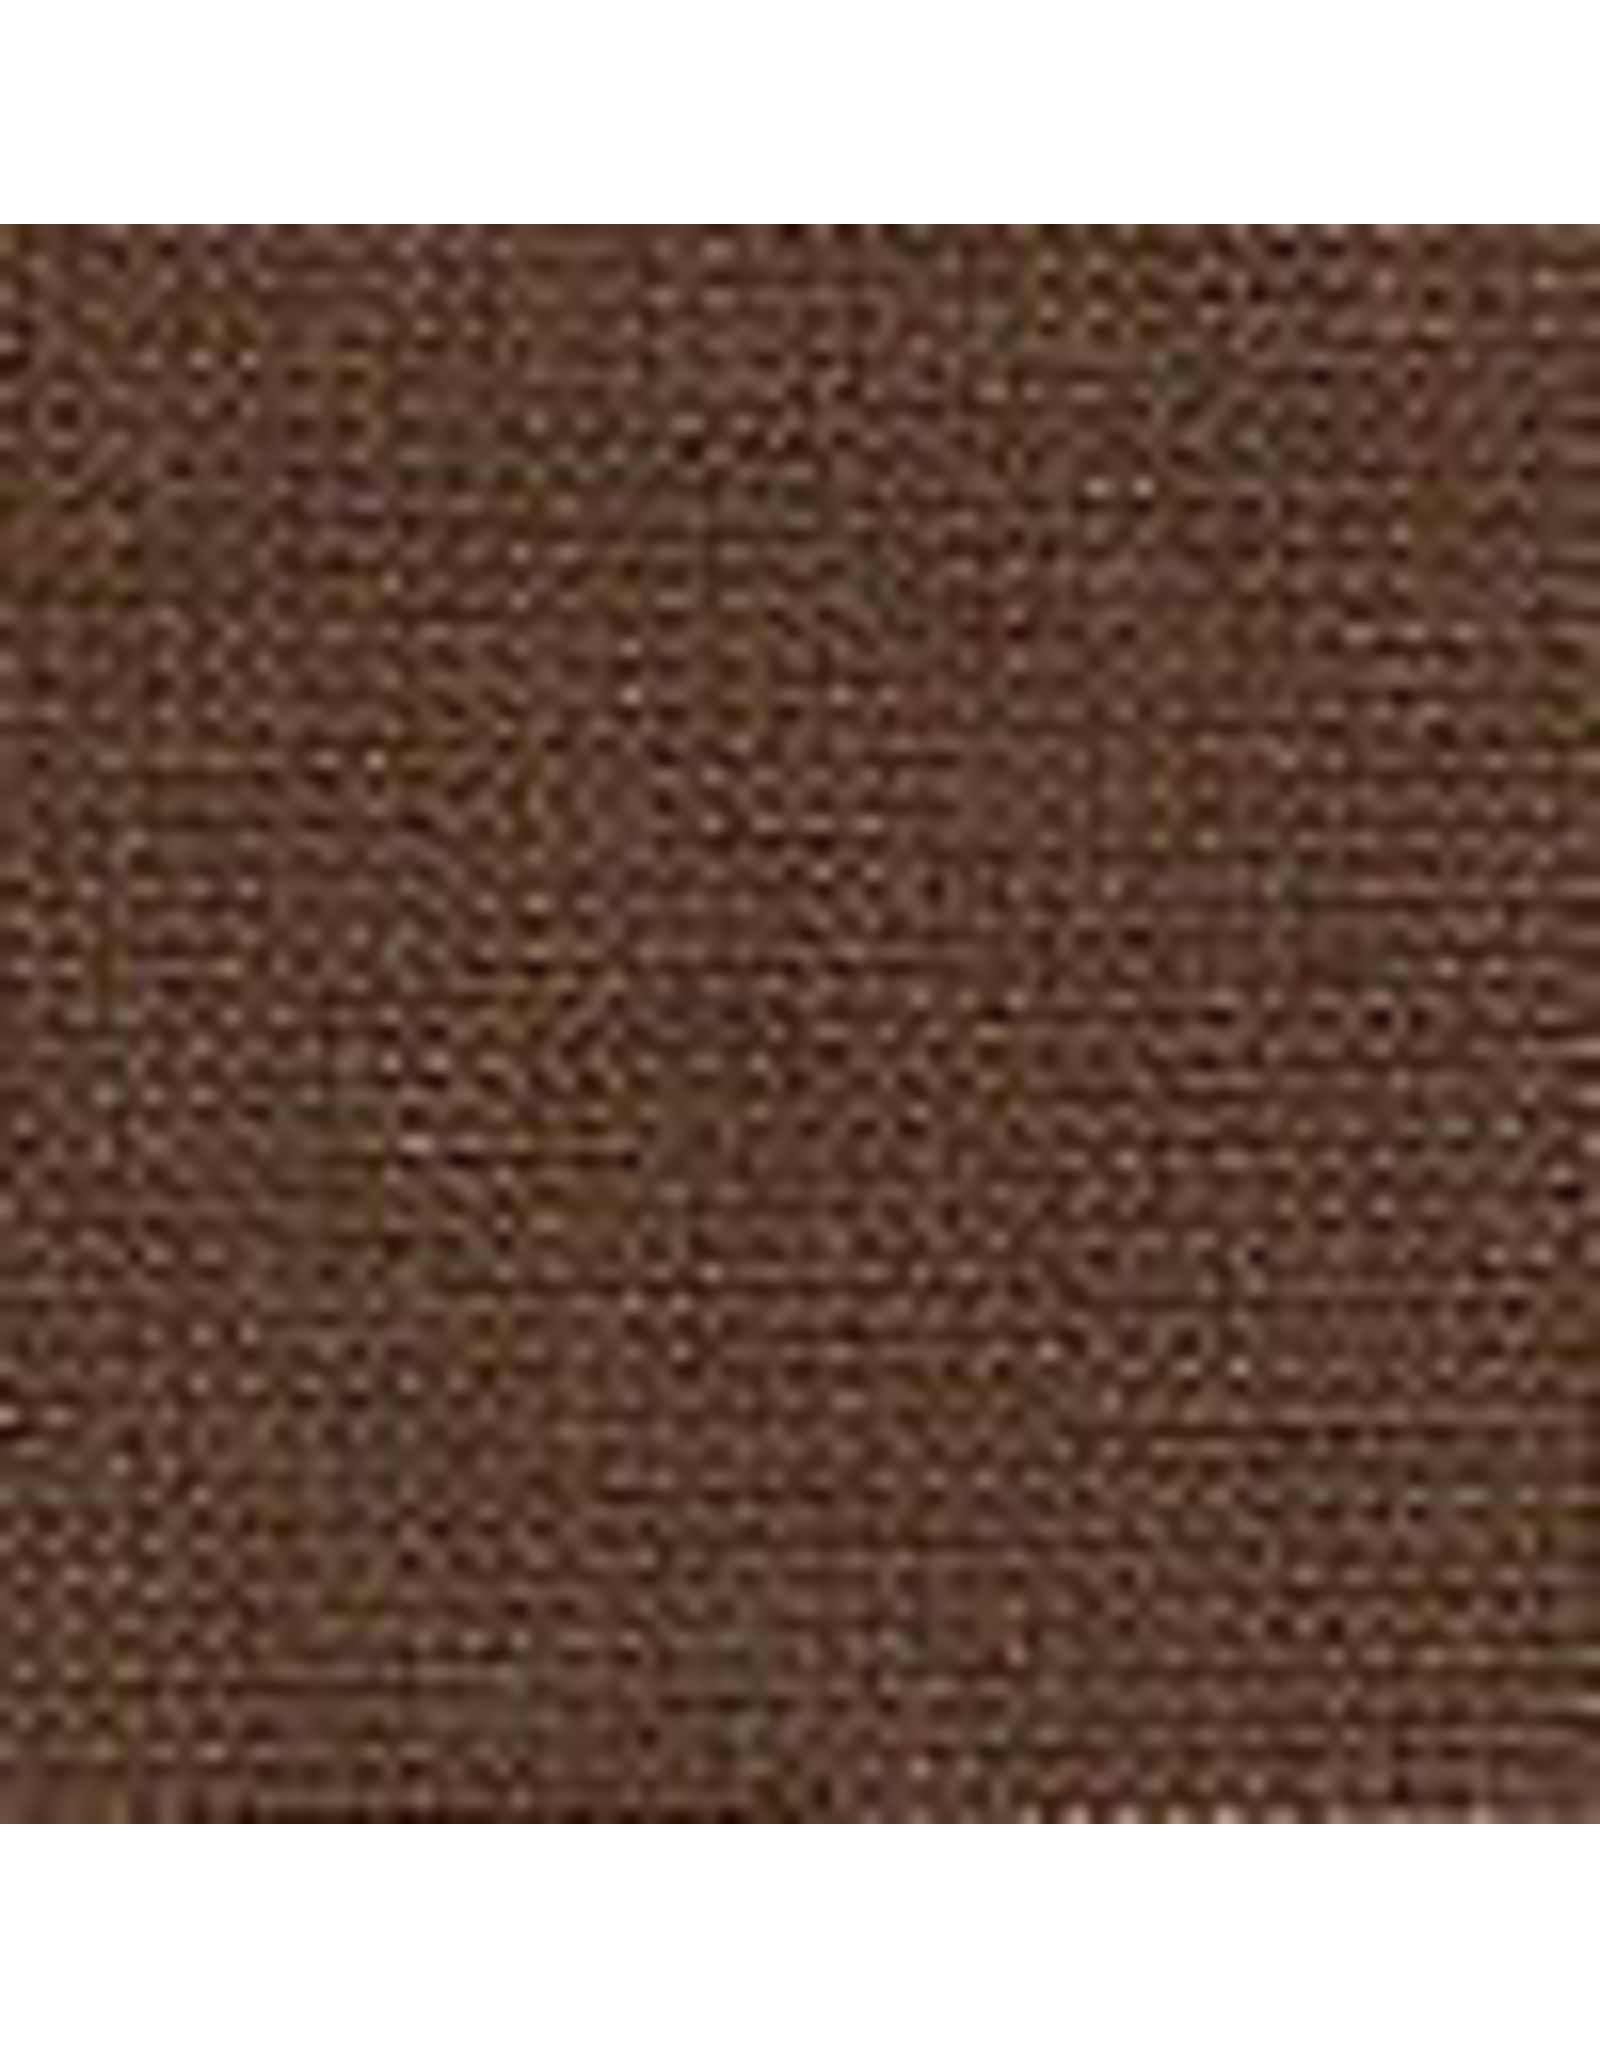 Yd. Solid Brown Fabric #901